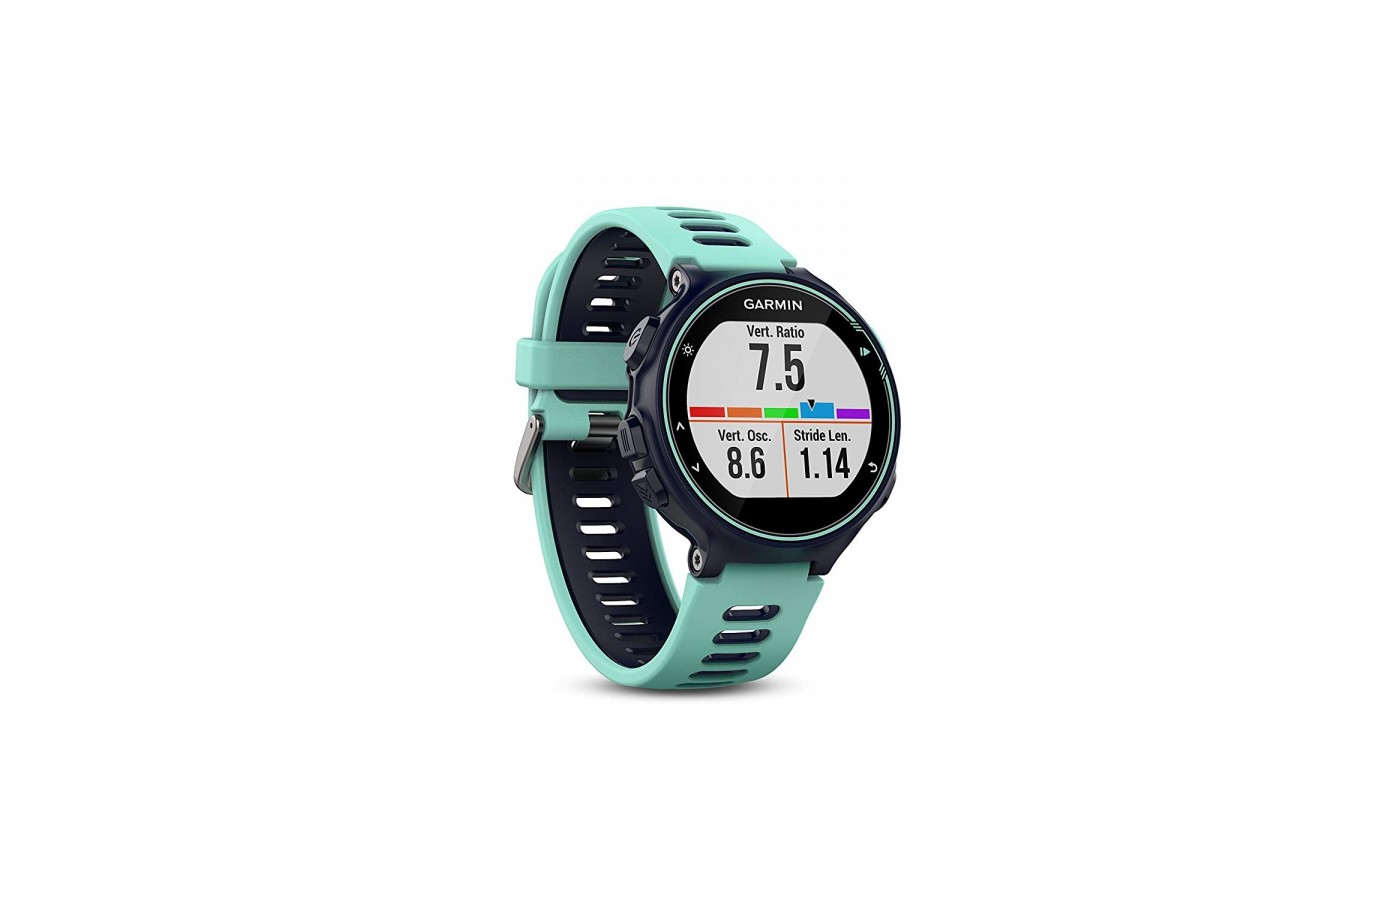 The Garmin Forerunner 735XT offers a comfortable, silicone band for long-term wear.